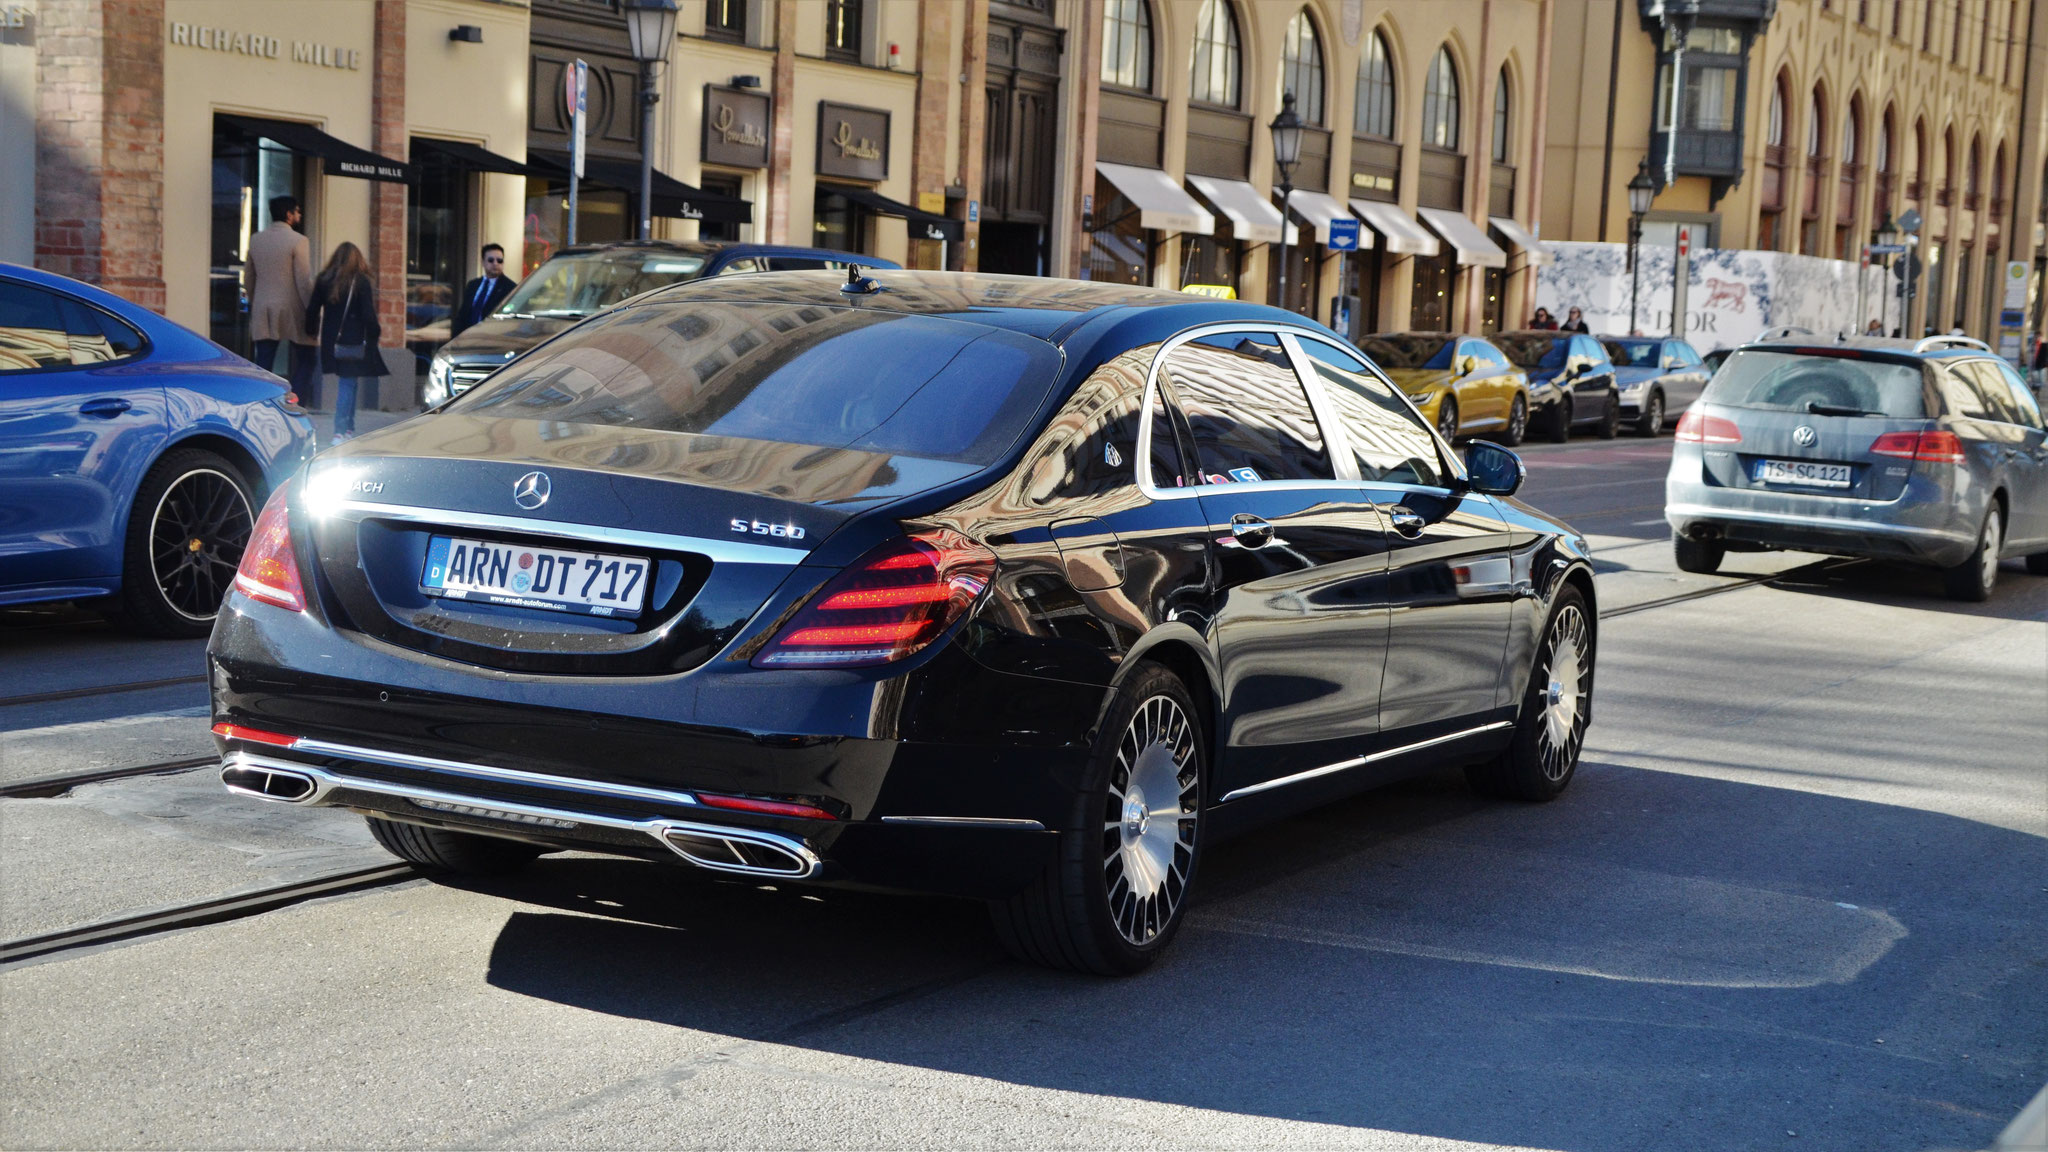 Mercedes Maybach S560 - ARN-DT-717